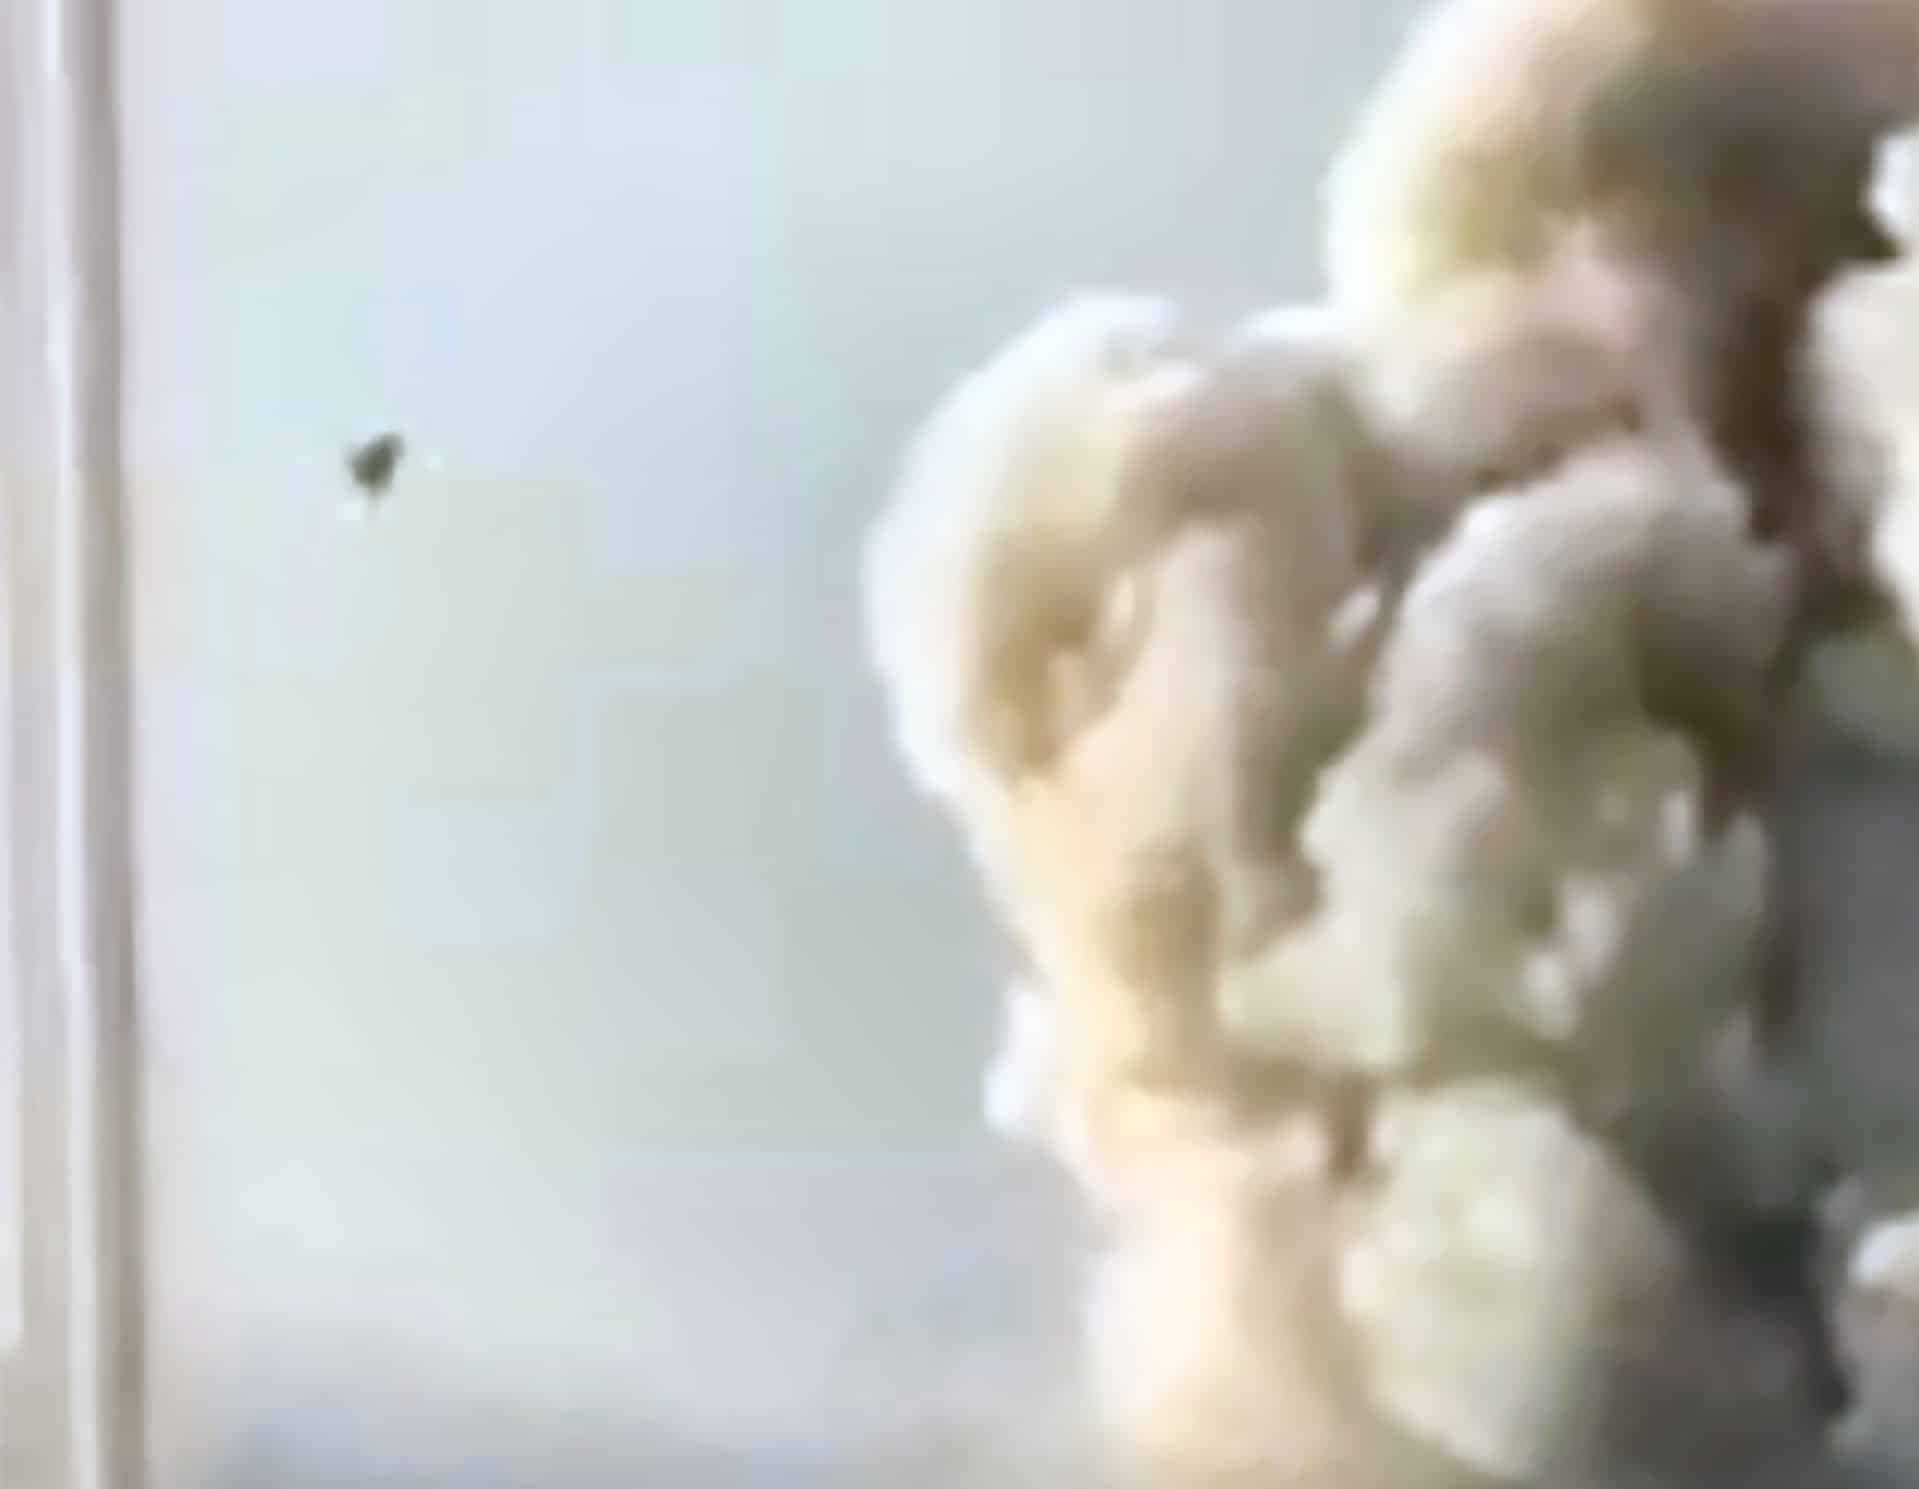 More video evidence of an Israeli F-16 attacking Beirut on the day of the explosion